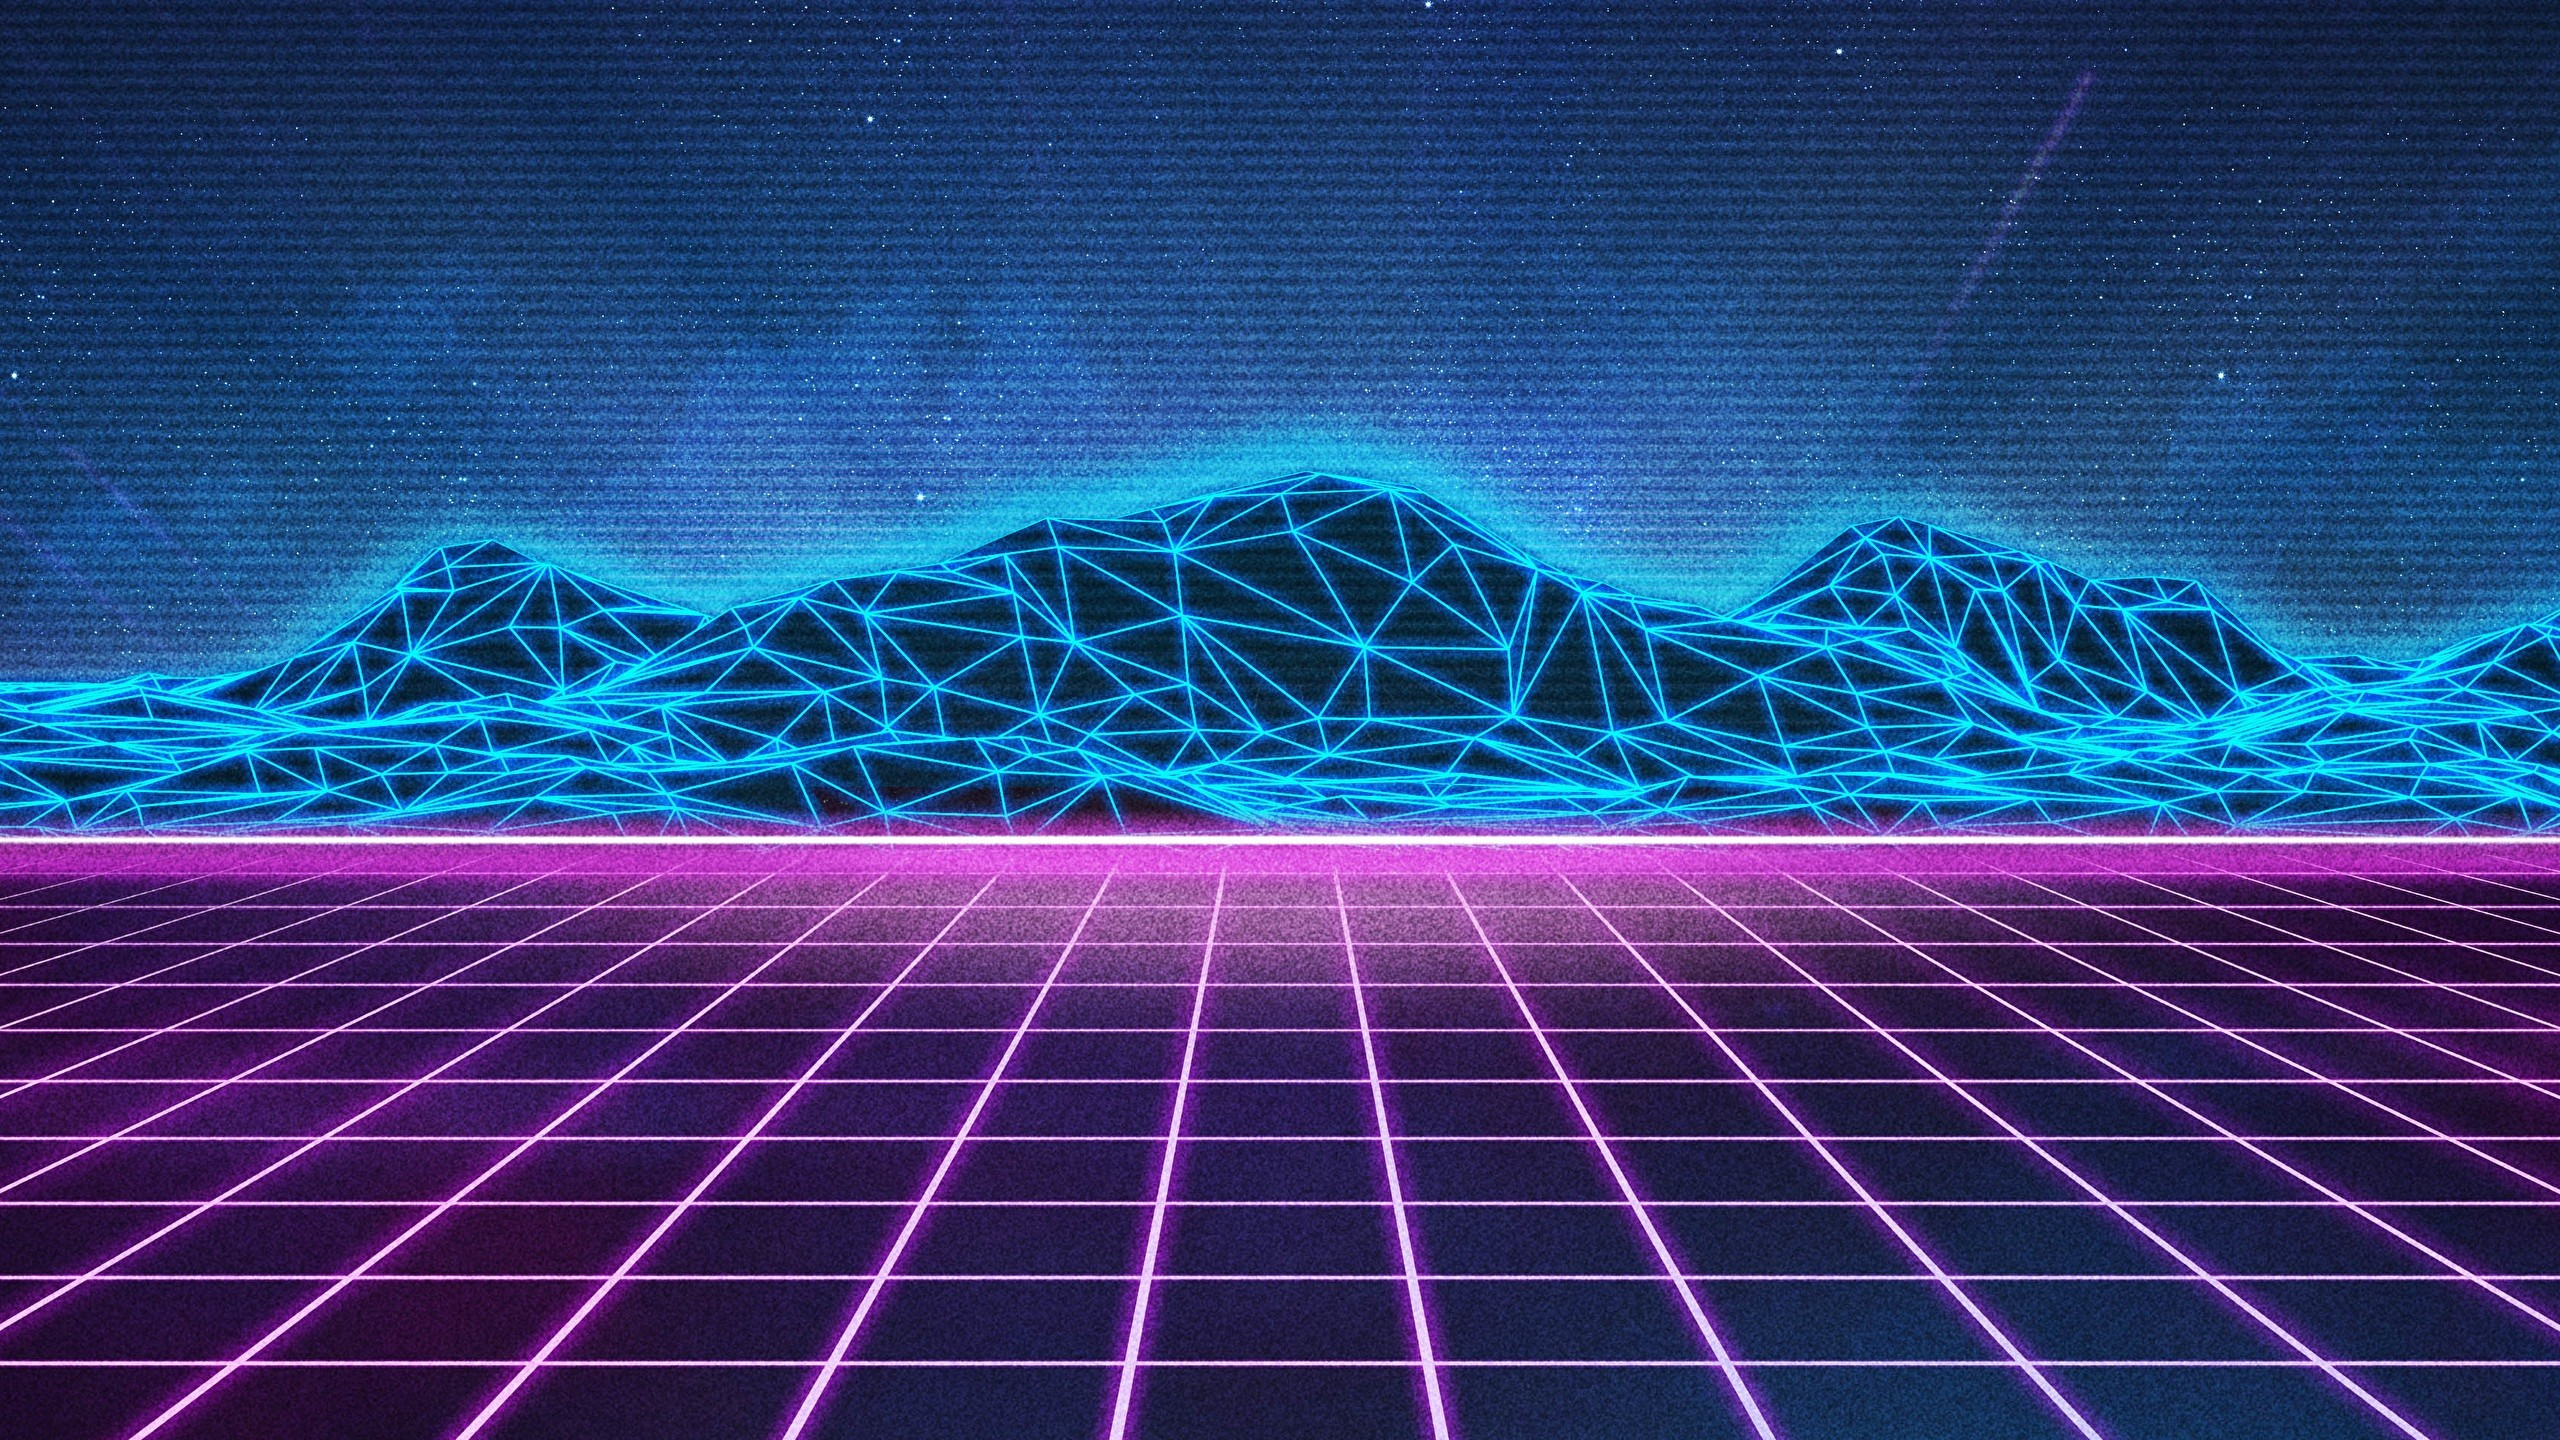 80s Wallpapers Hd Wallpaper Collections 4kwallpaper Wiki